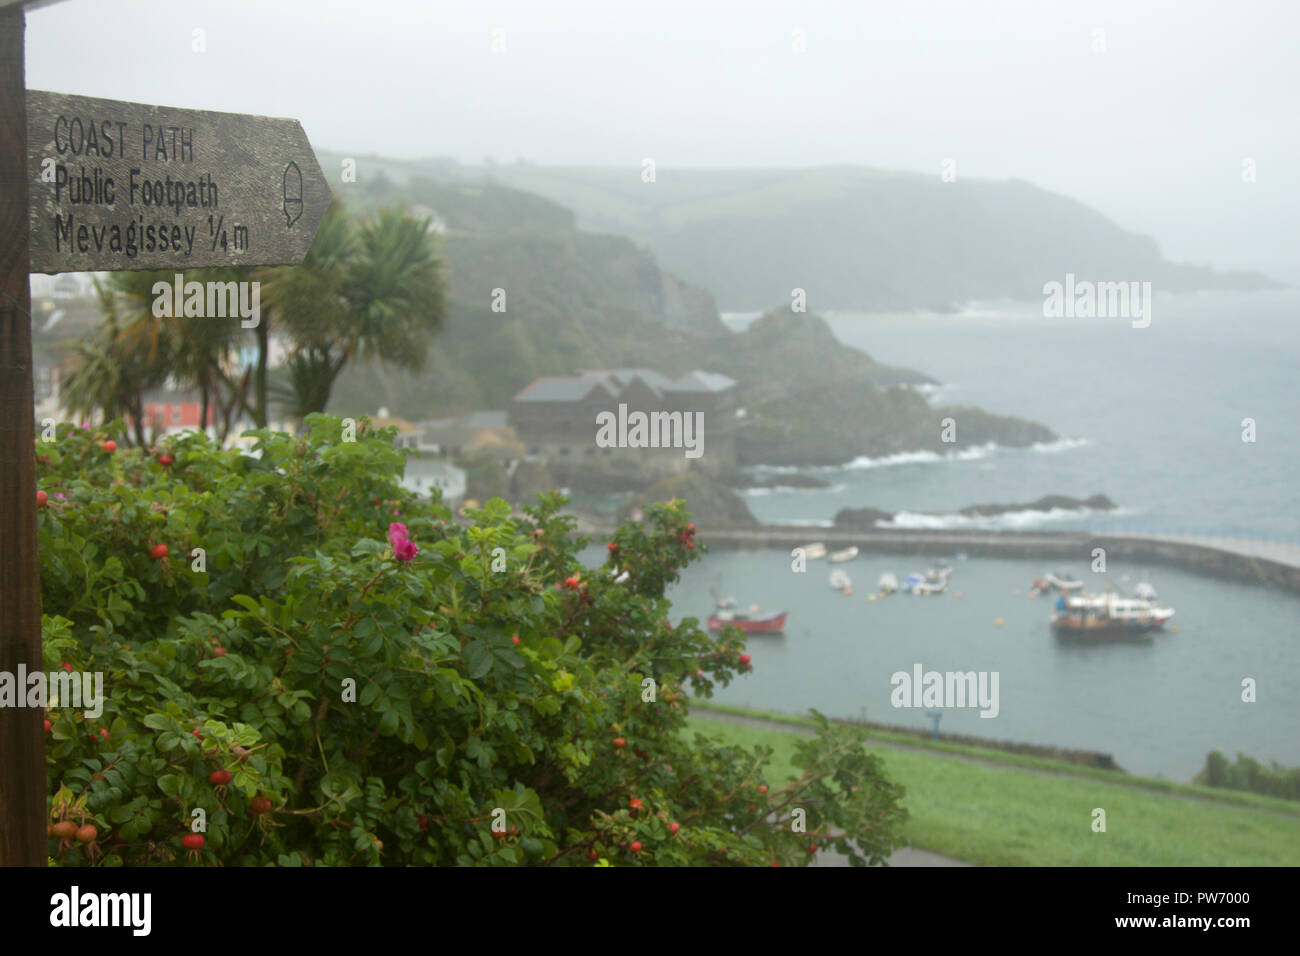 Public footpath sign pointing to Mevagissey - Stock Image